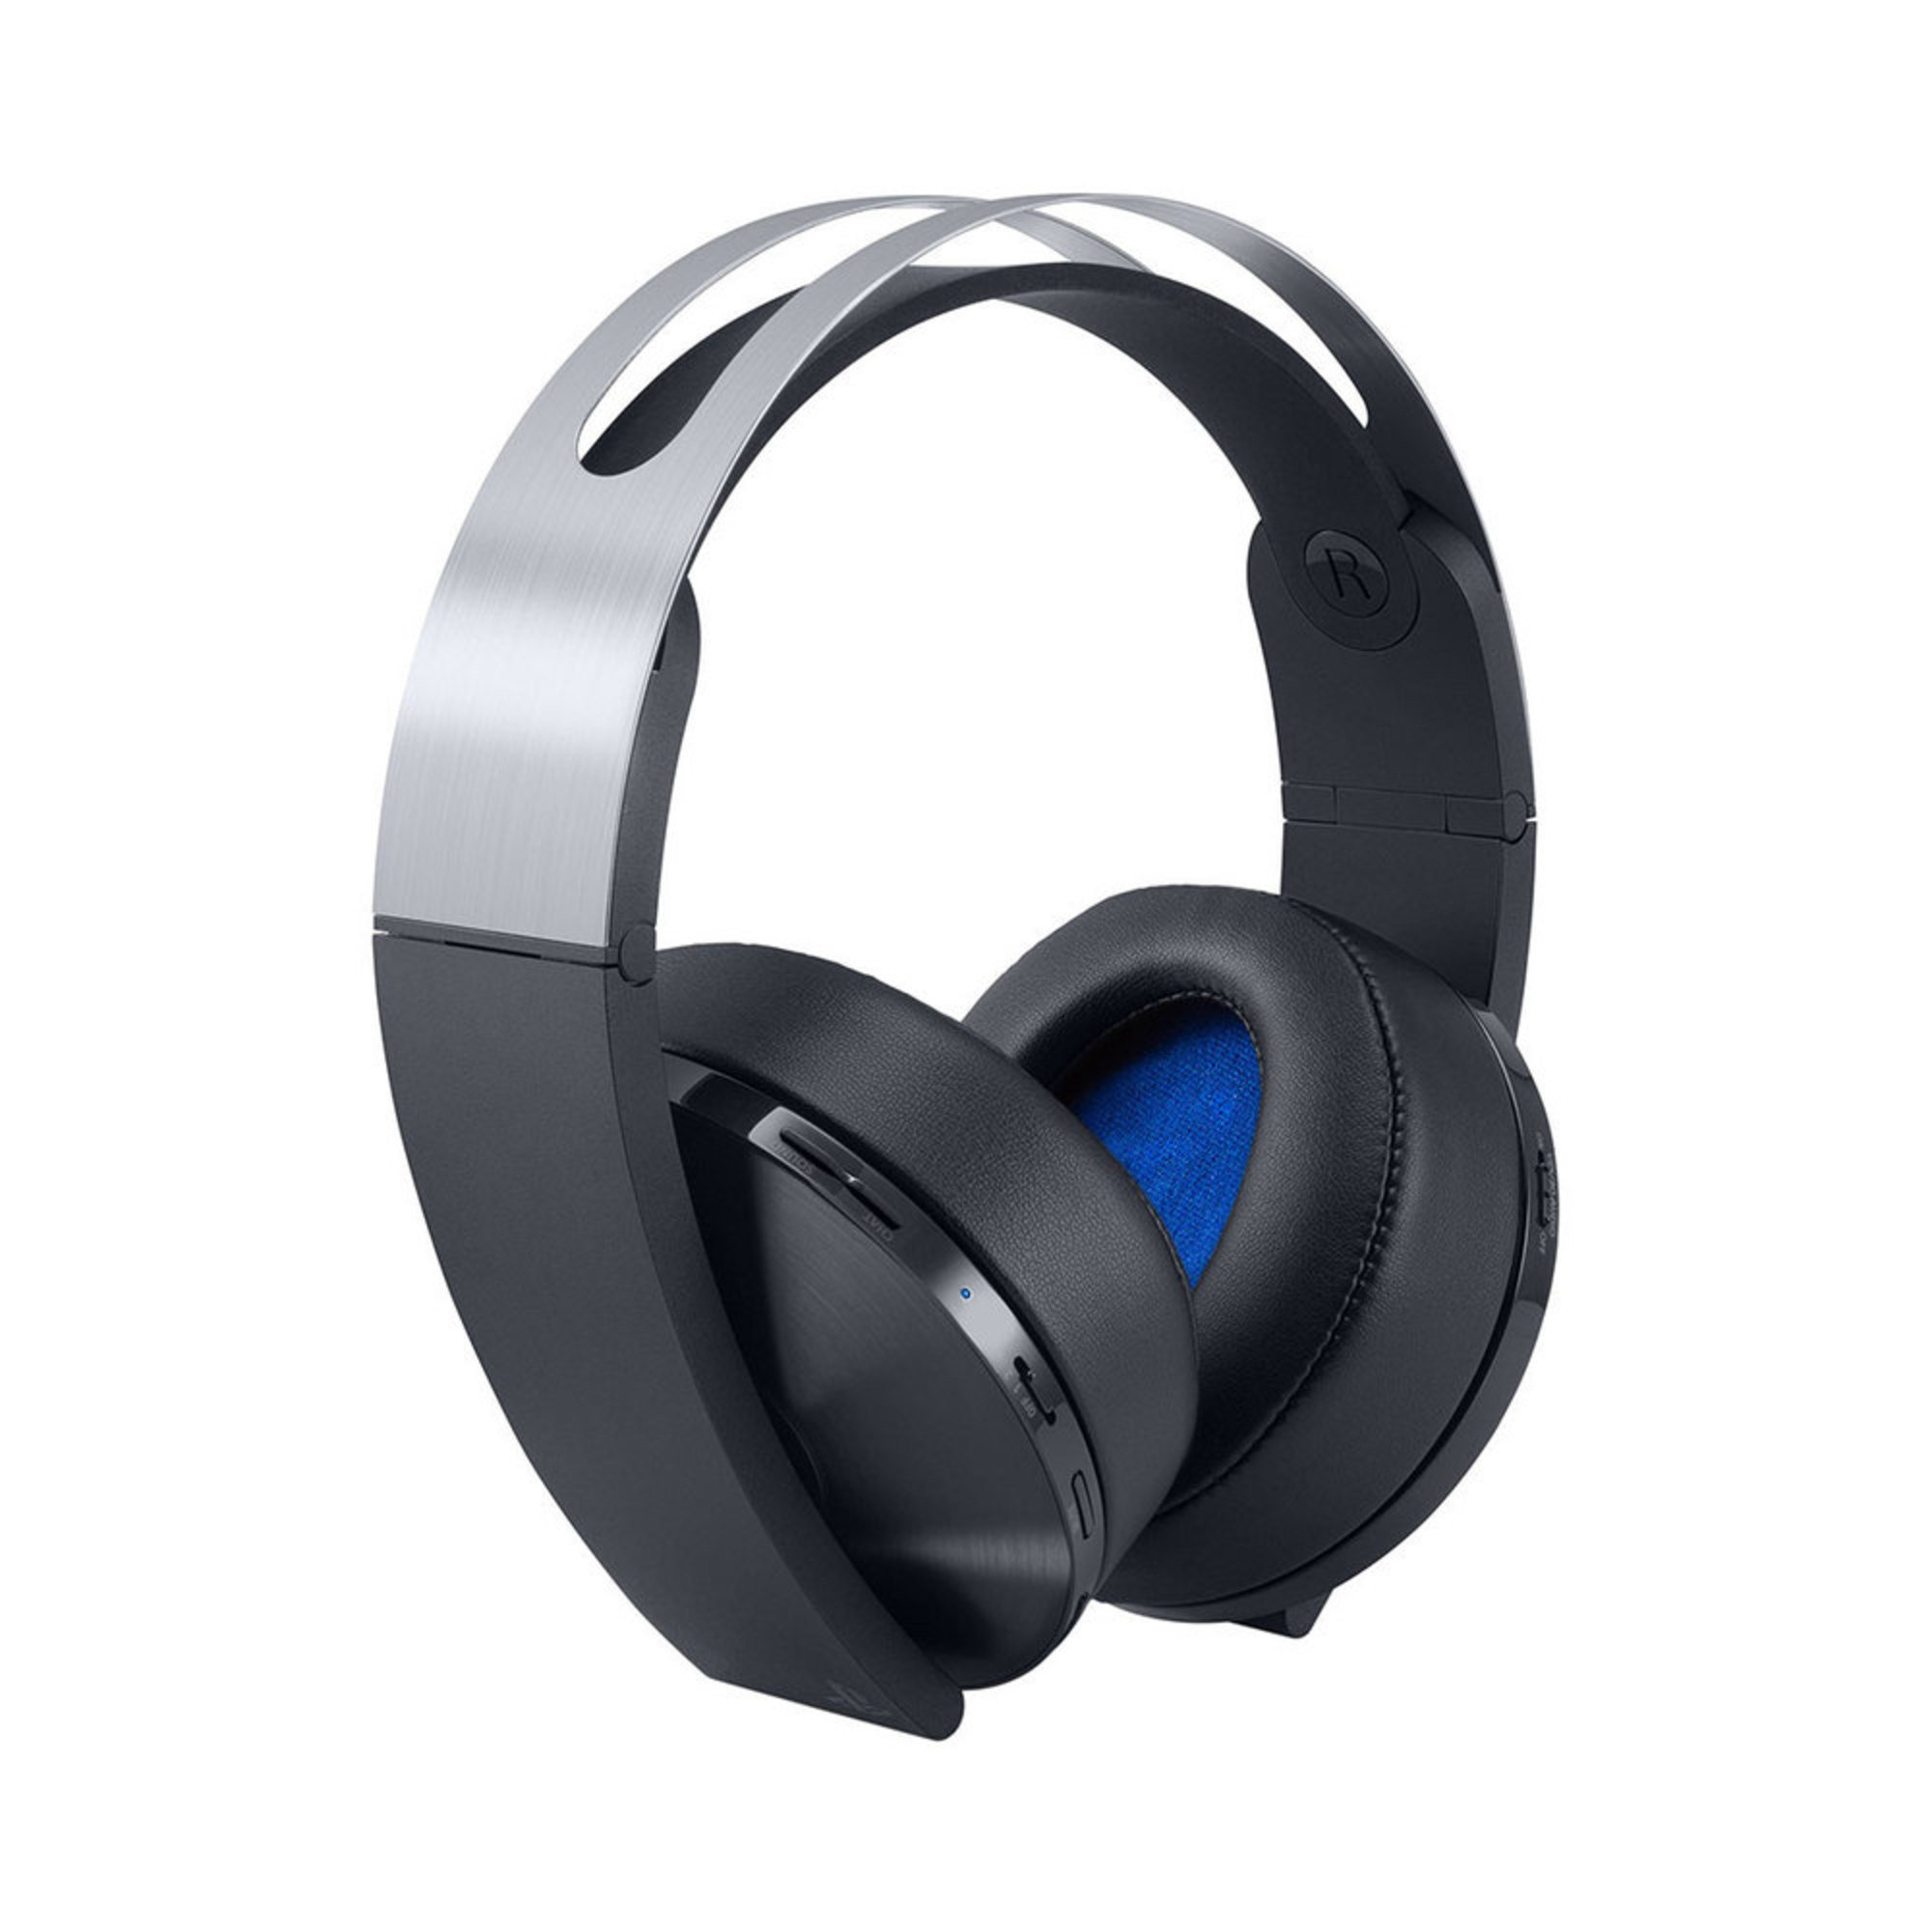 Ps4 Platinum Wireless Headset Gaming Headsets Electronics Shop Your Navy Exchange Official Site